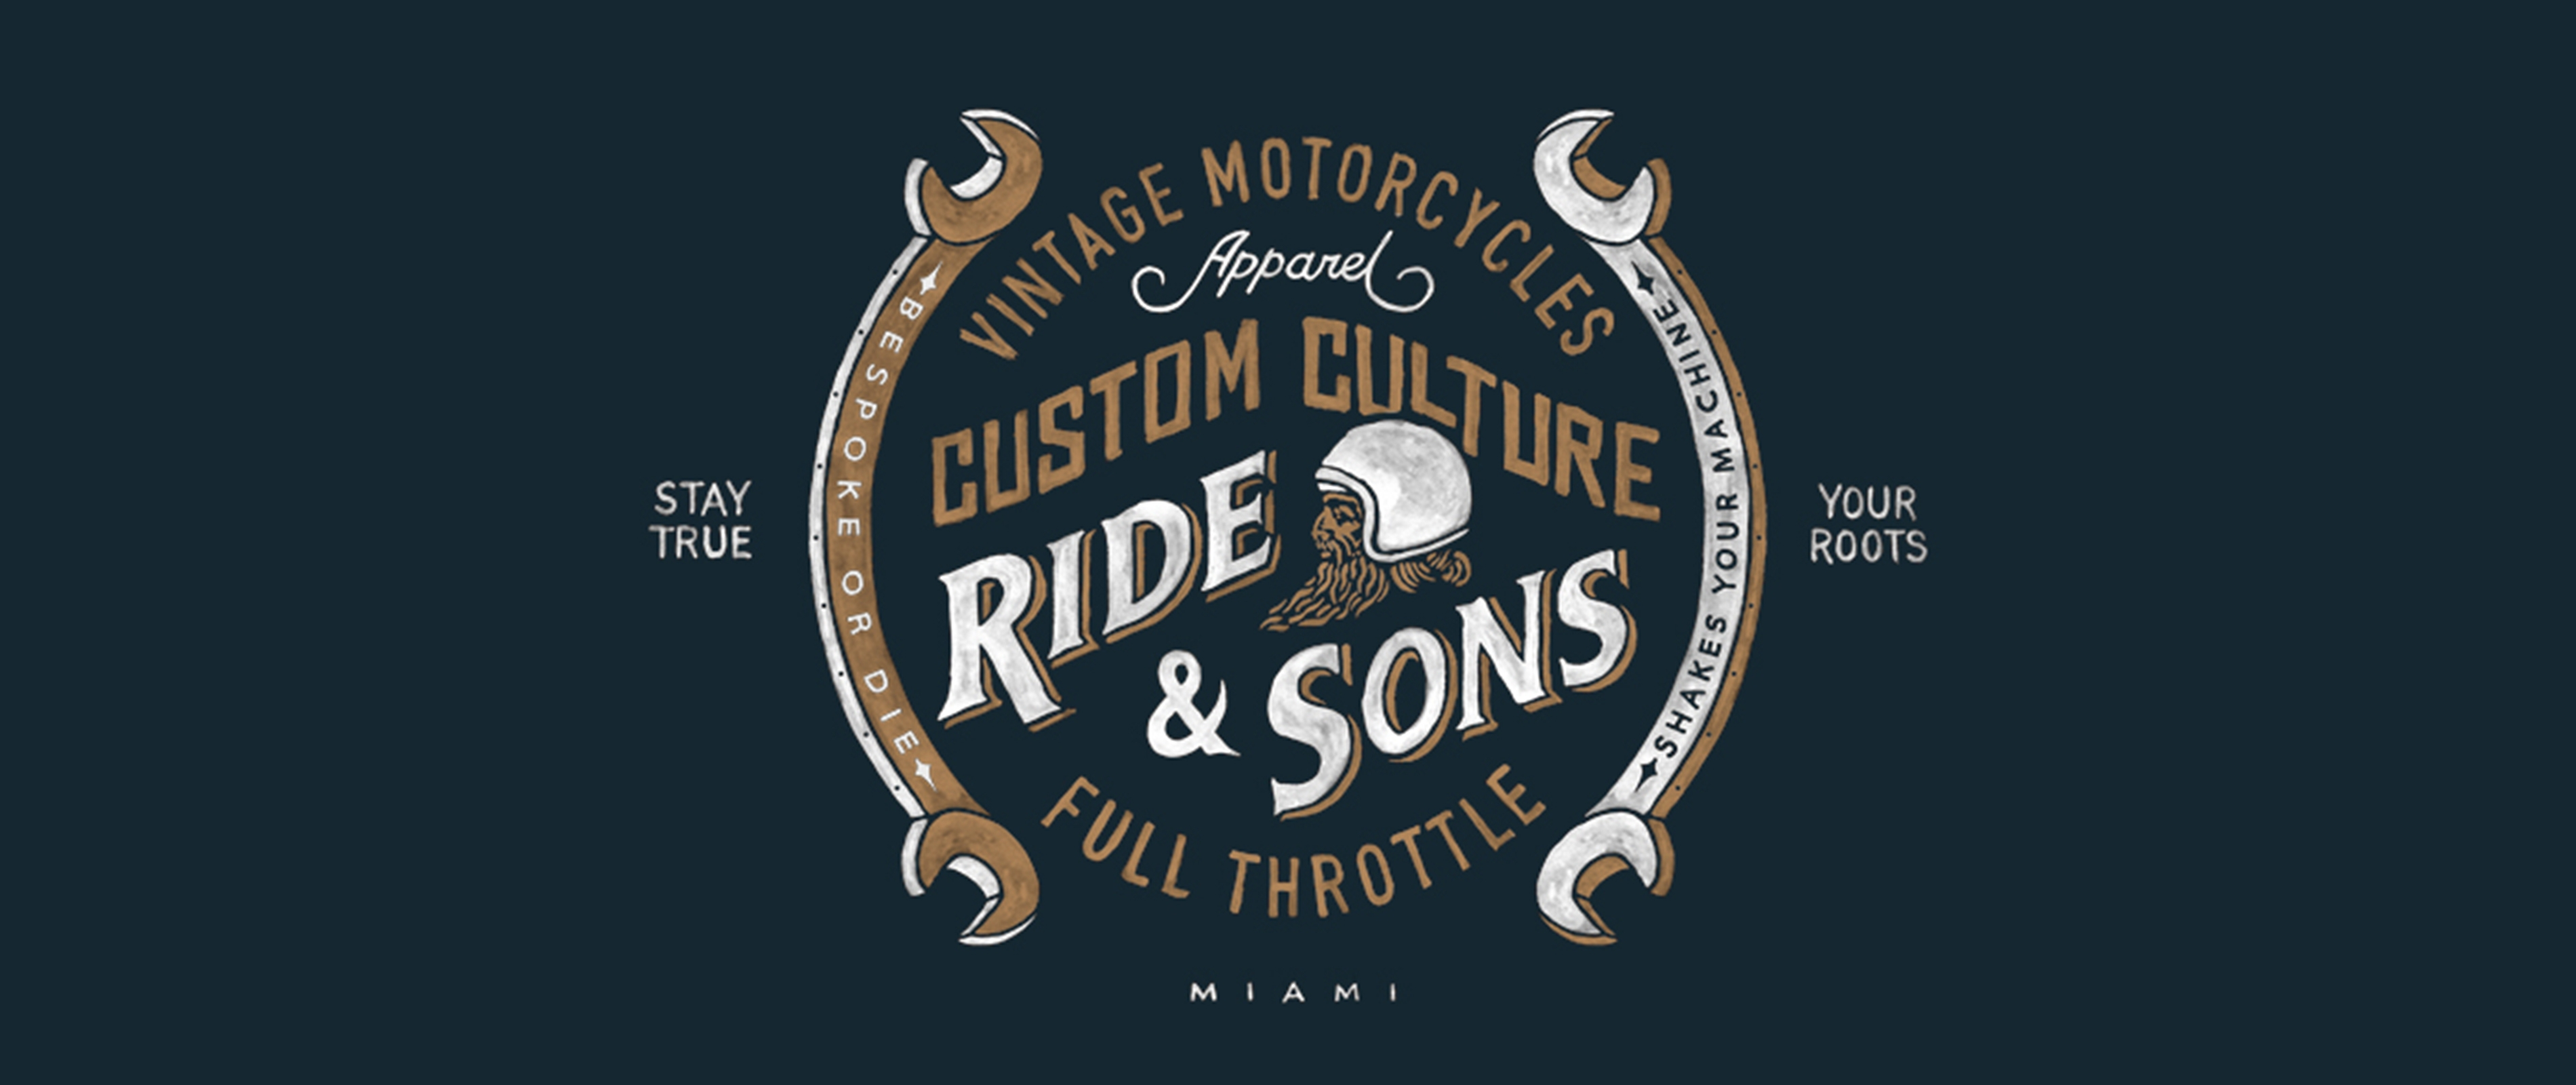 RIDE AND SONS - BMD